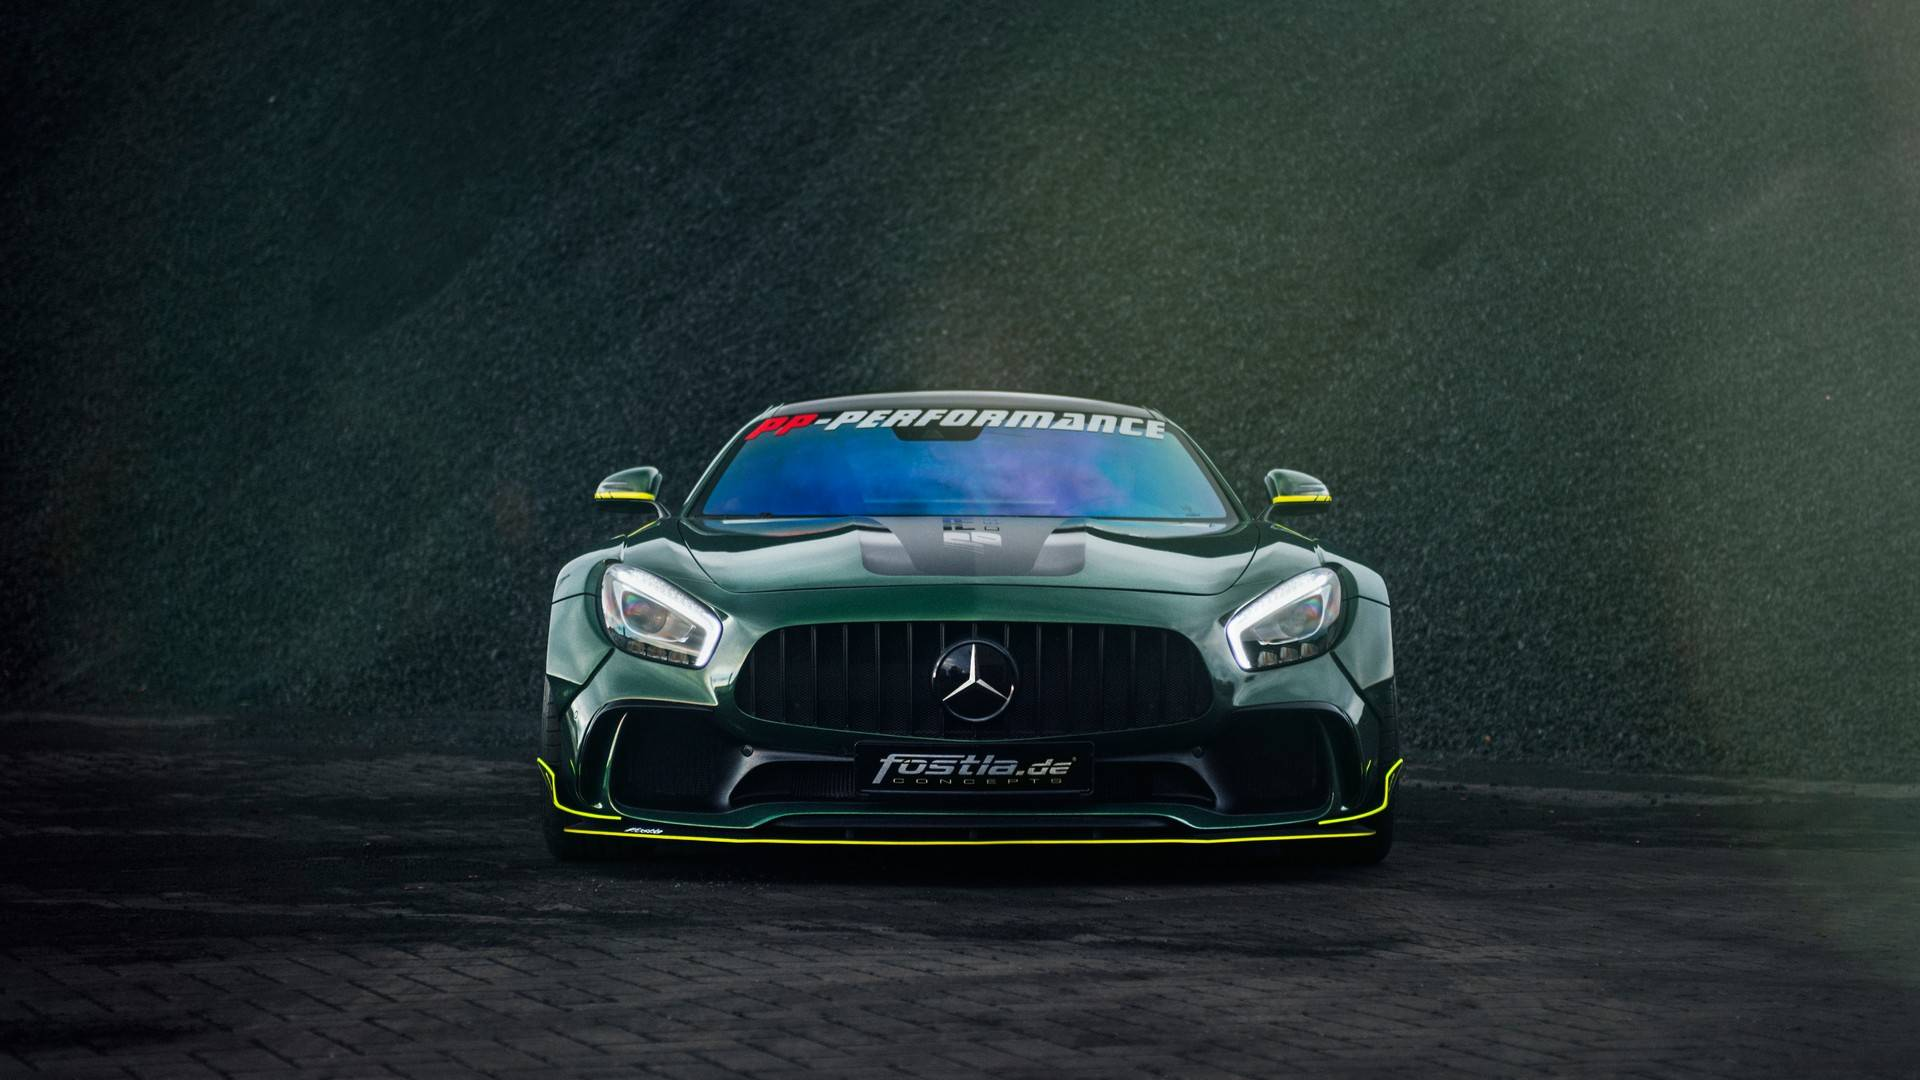 Tuner coaxes 650hp from Mercedes AMG GT